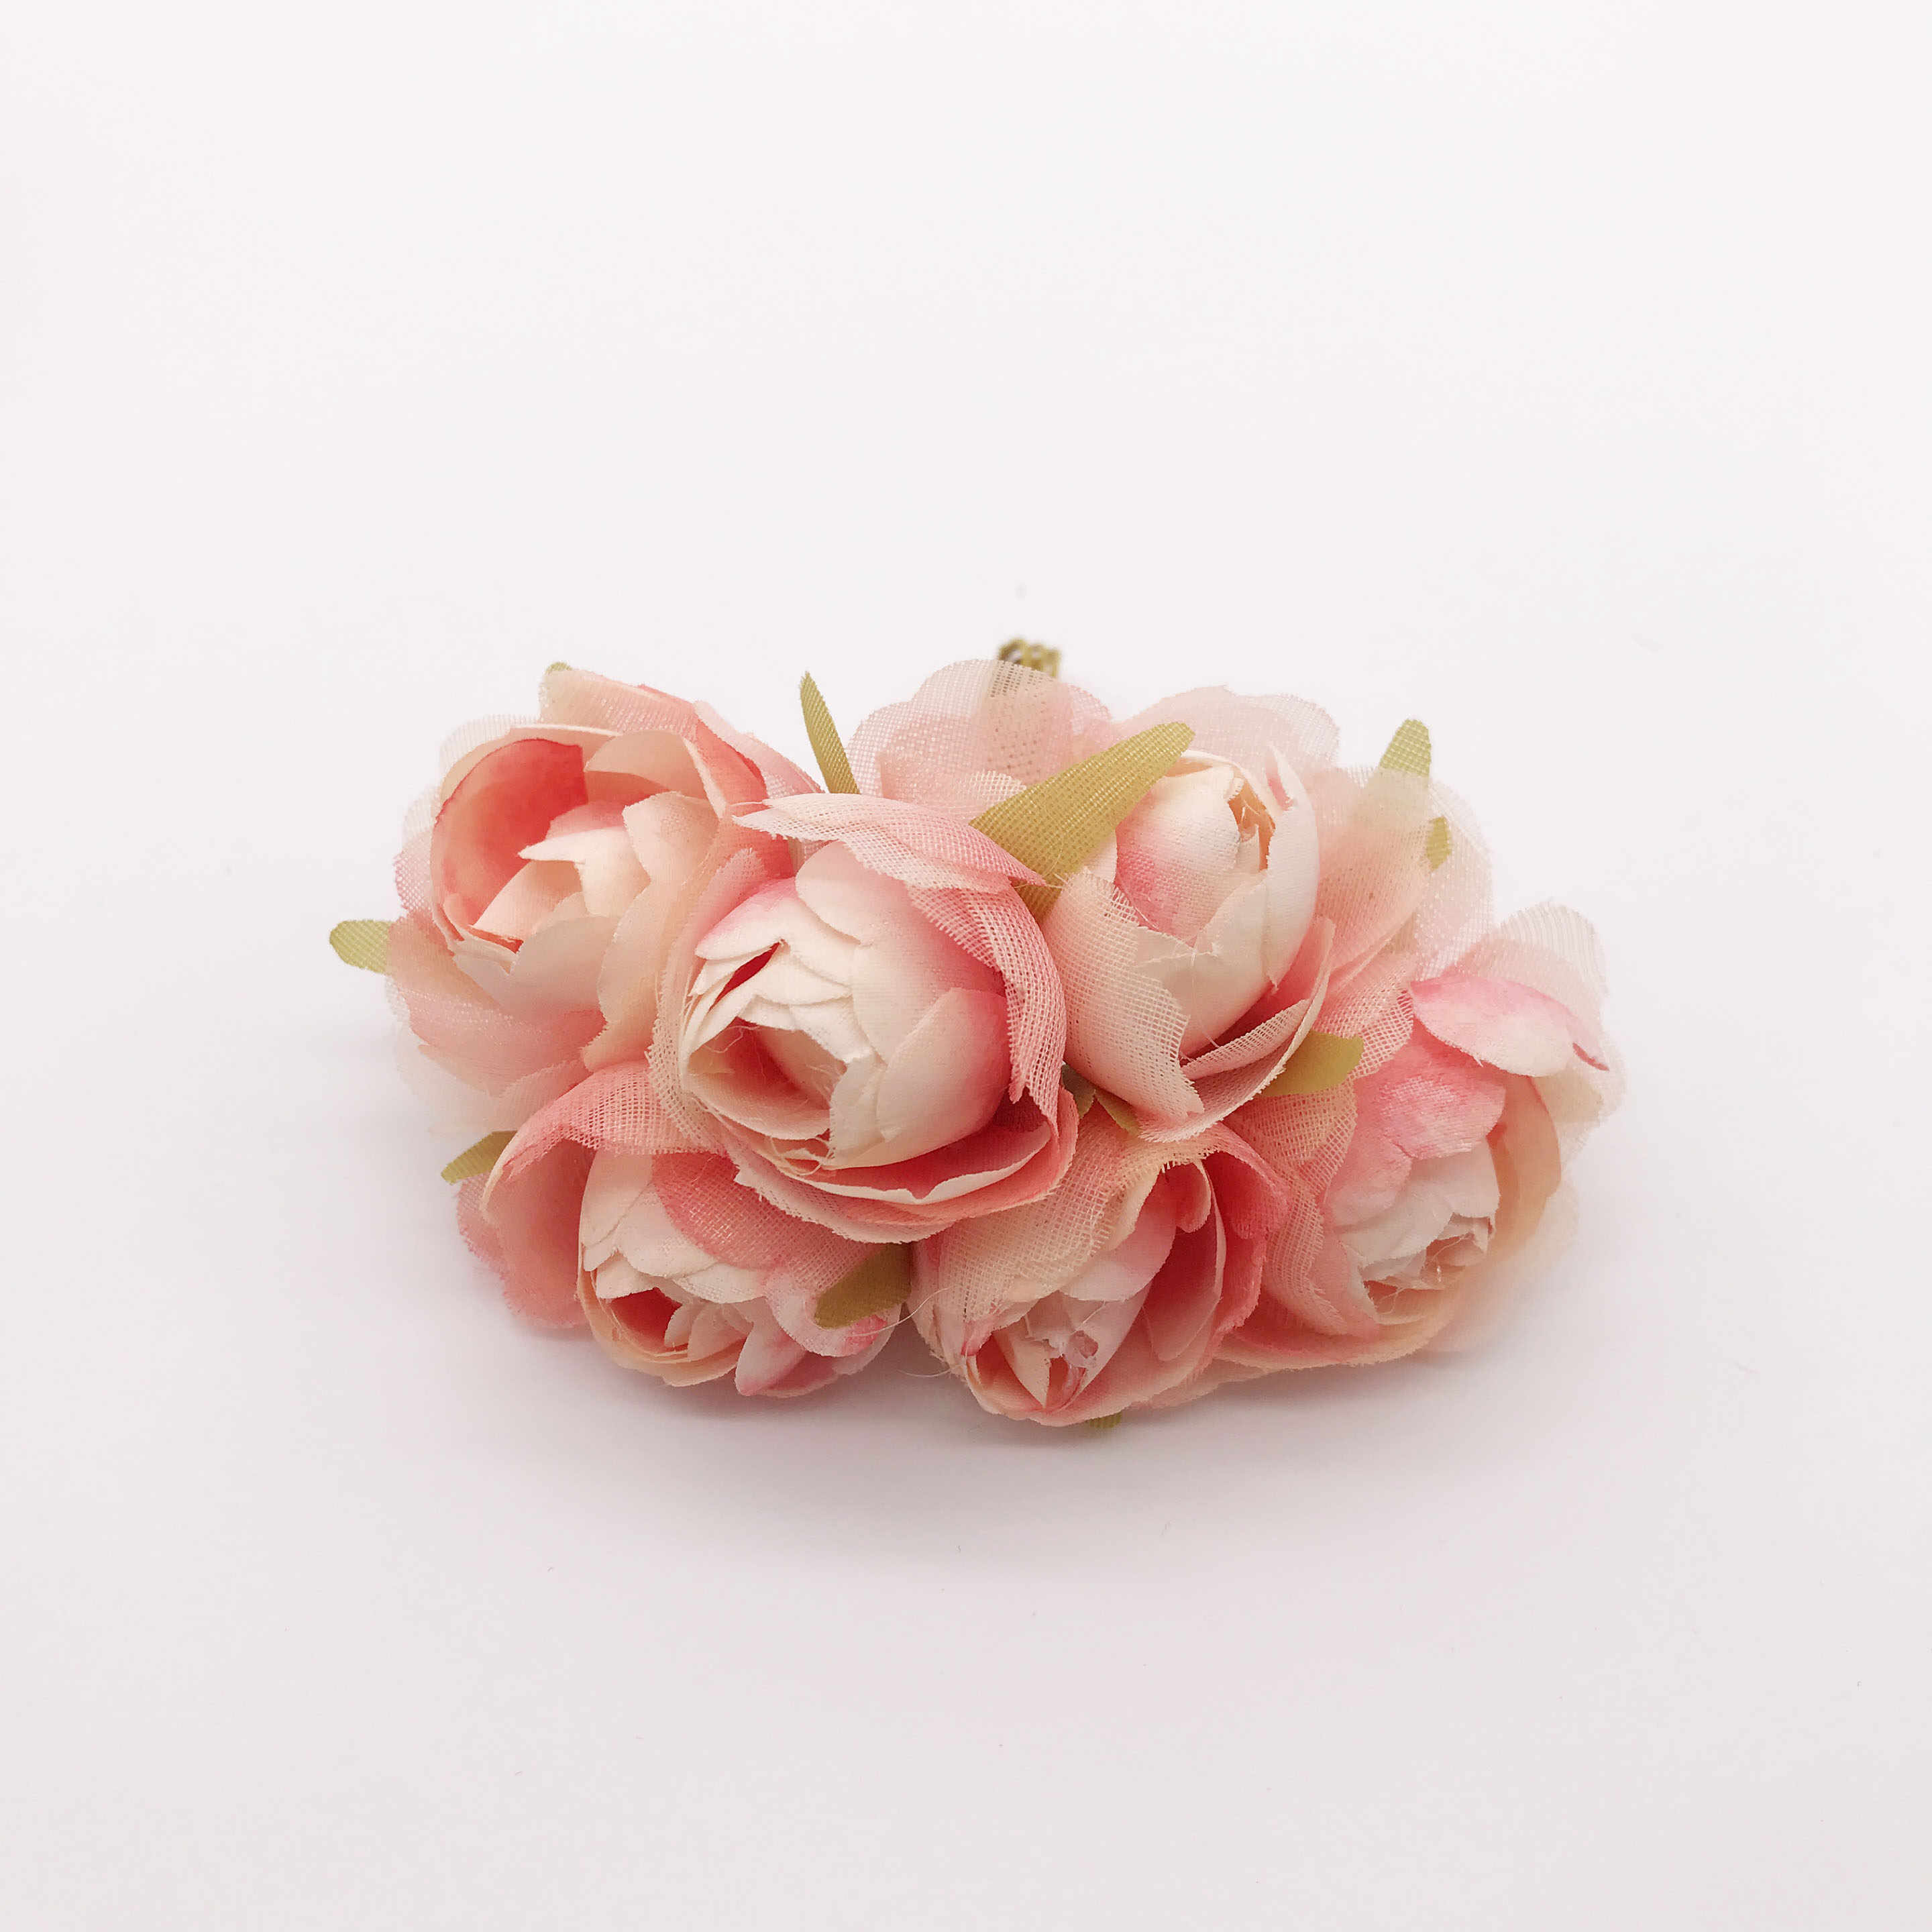 6 pieces / bunch of silk rose small bud tea artificial flowers home decoration wedding party DIY gift box Christmas wreath